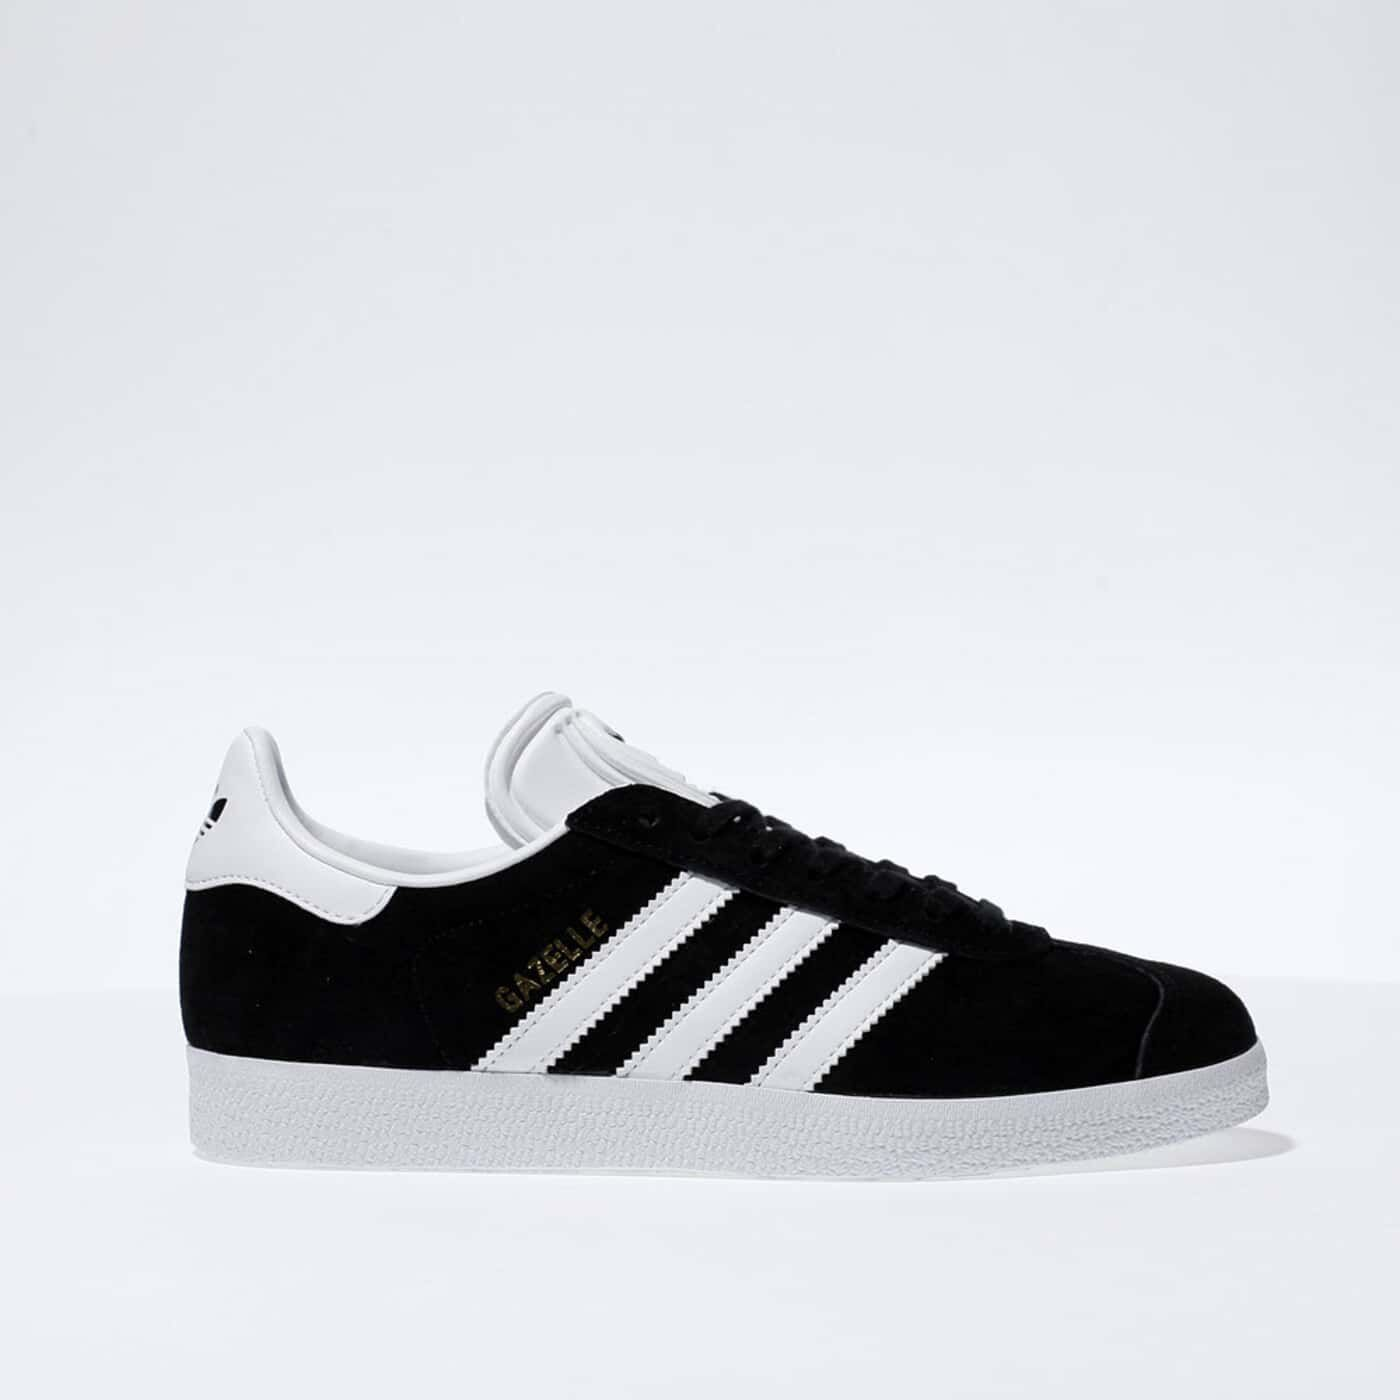 White adidas Gazelle Suede Trainers